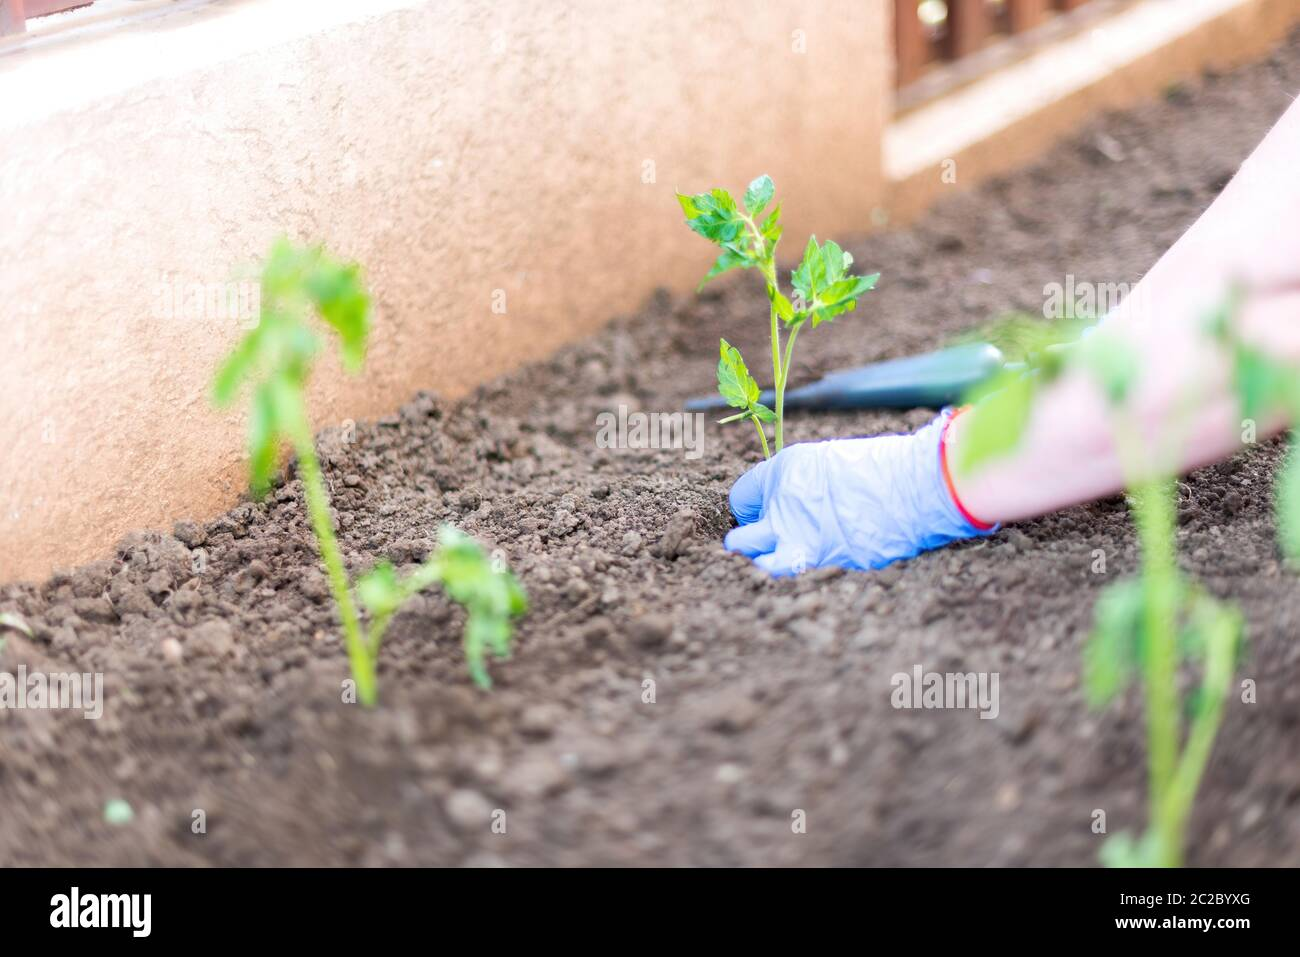 High angle of crop person in gloves planting green seedling on garden bed with dry loose soil against blurred fence in daytime Stock Photo